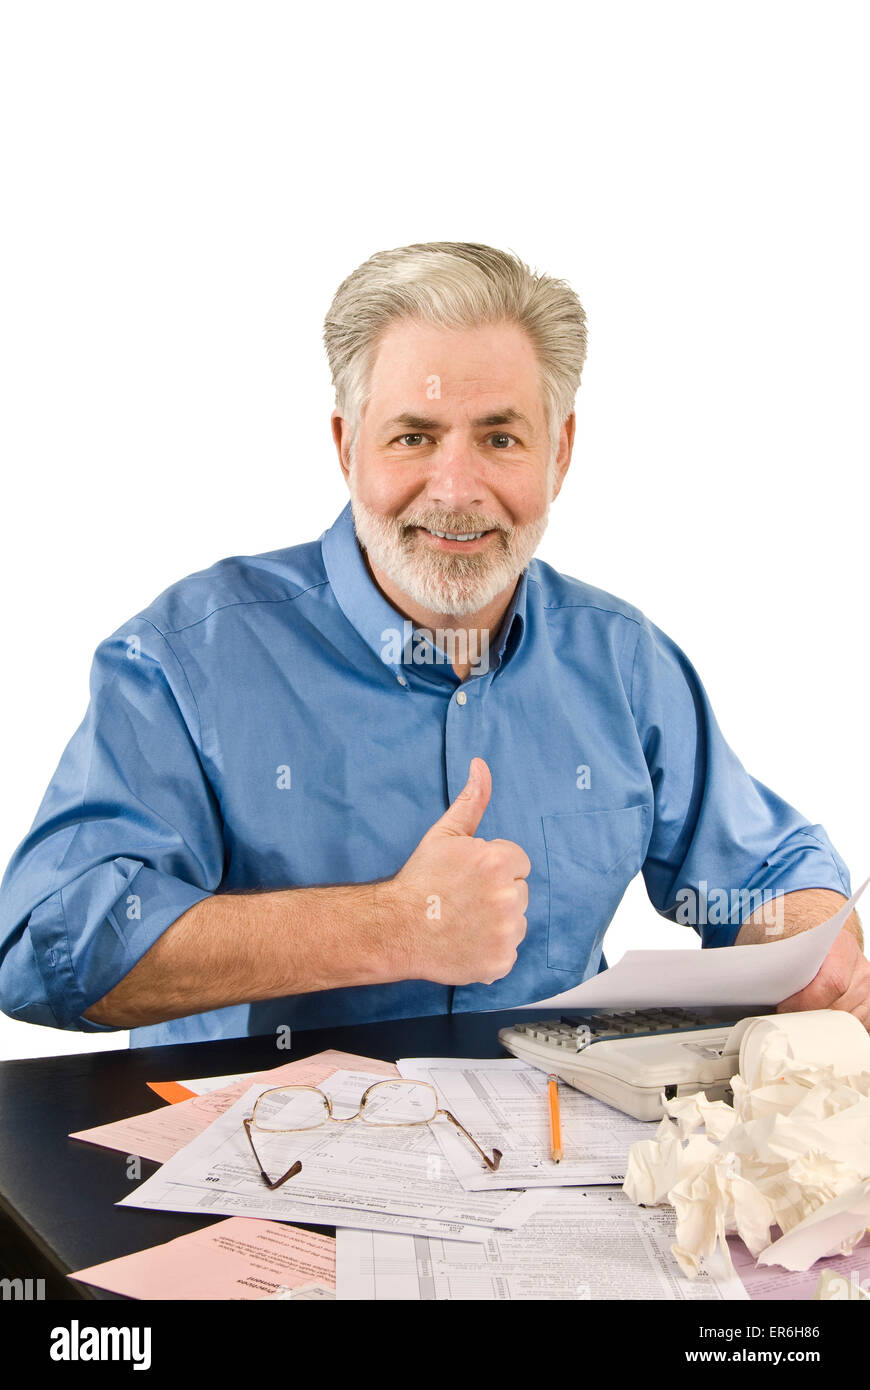 Business man happy.  Getting an income tax refund. - Stock Image